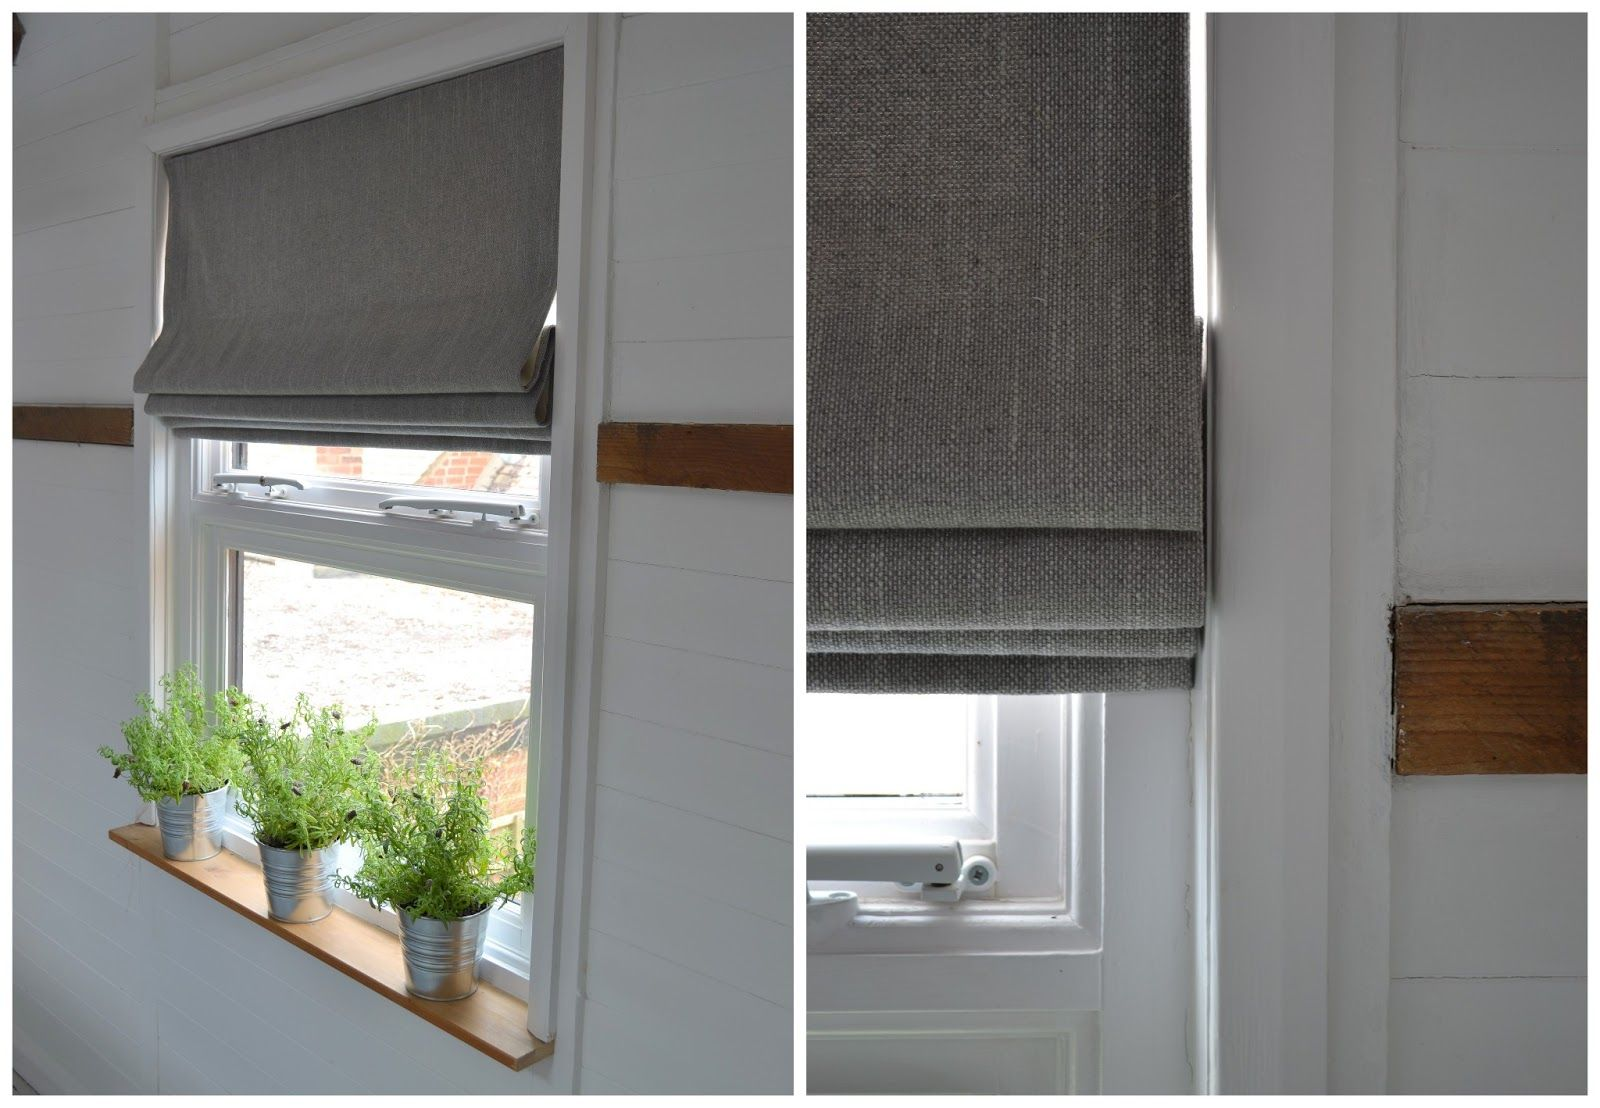 Where To Buy Roman Shades Blinds Cleaning Google Search Blinds Cleaning Services